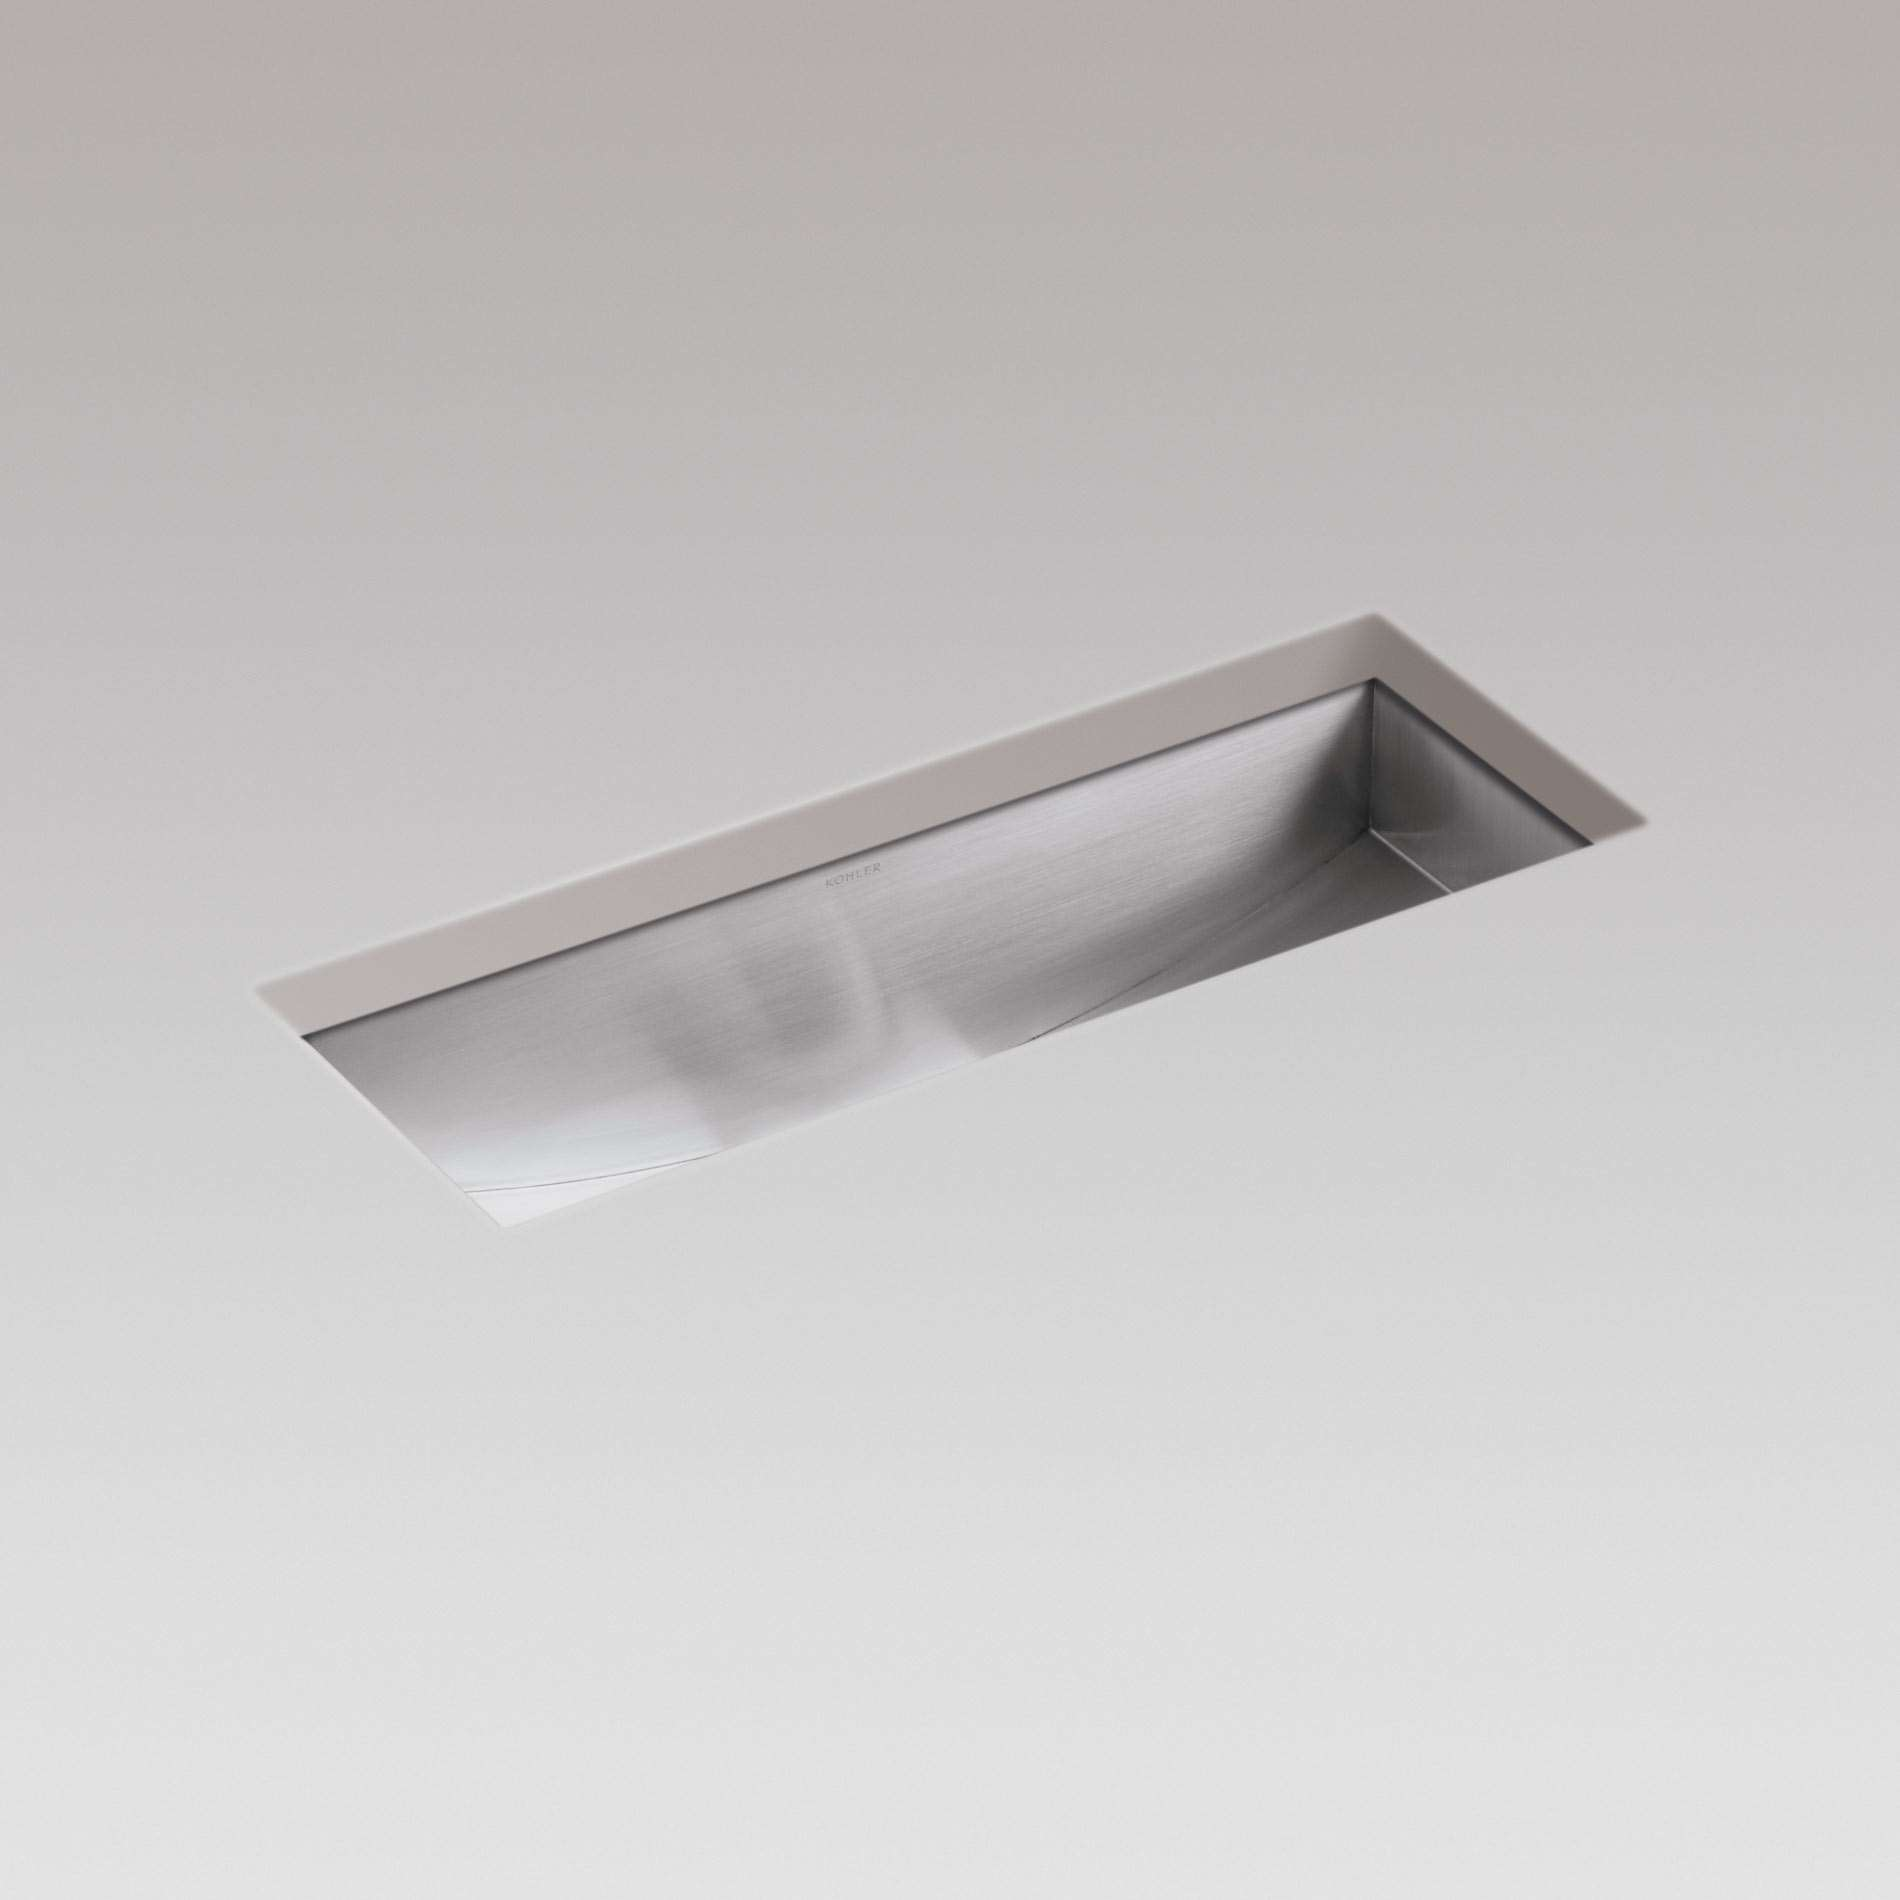 ... : Icerock Trough 3179 Stainless Steel Sink - Kitchen Sinks & Taps